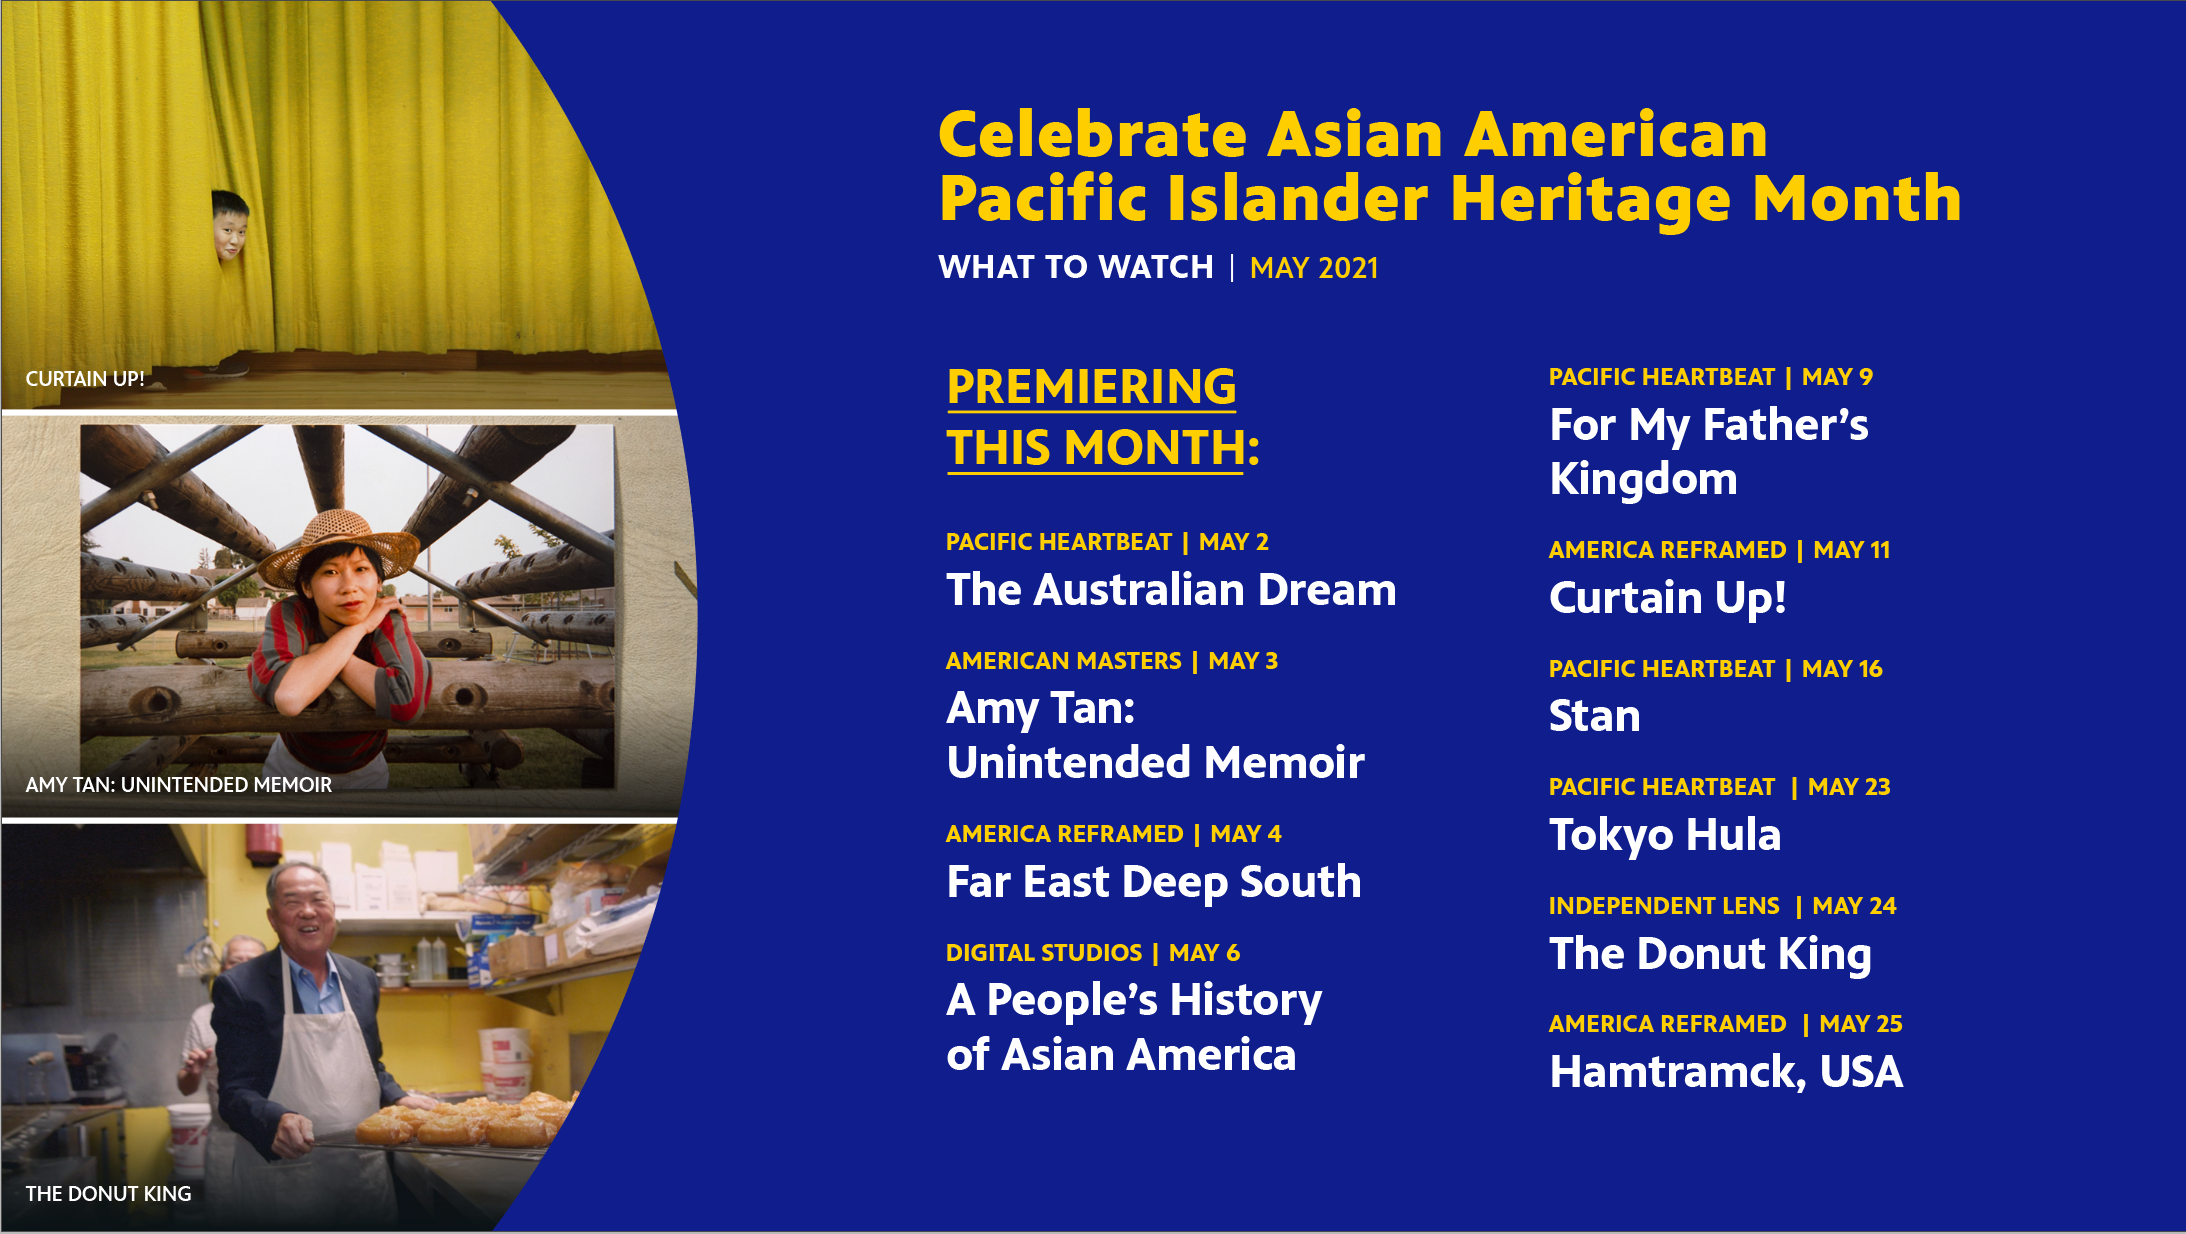 Celebrate Asian American Pacific Islander Heritage Month With These Films Premiering in May